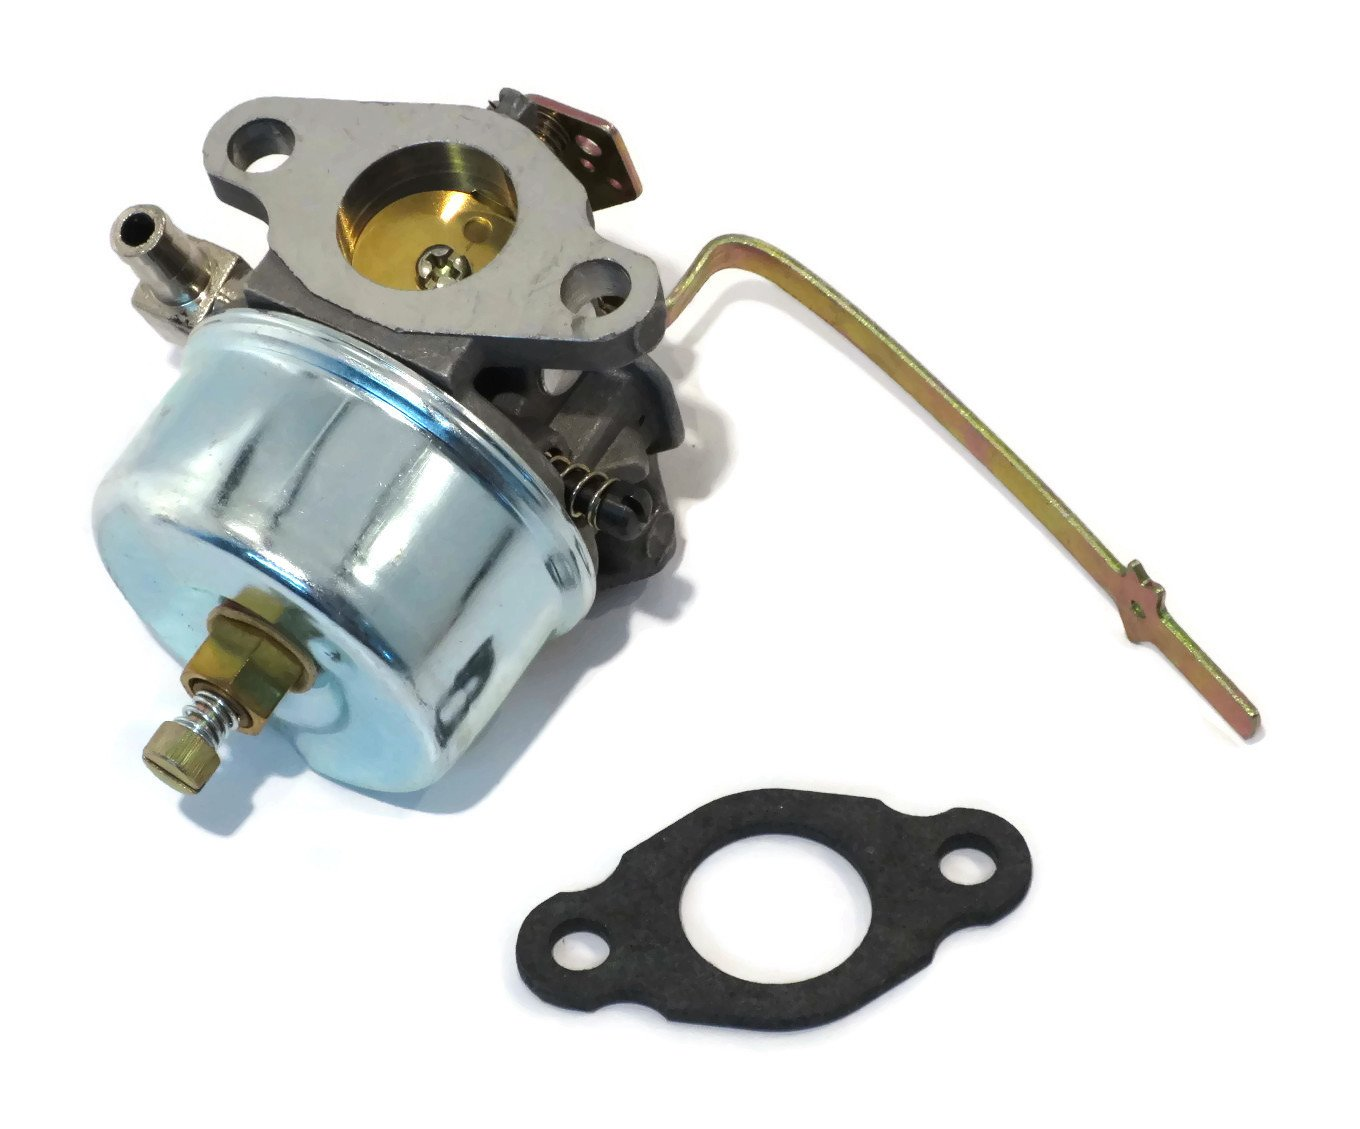 New CARBURETOR Carb for Tecumseh 631921 632284 631070A fits H25 H30 H35 Engines